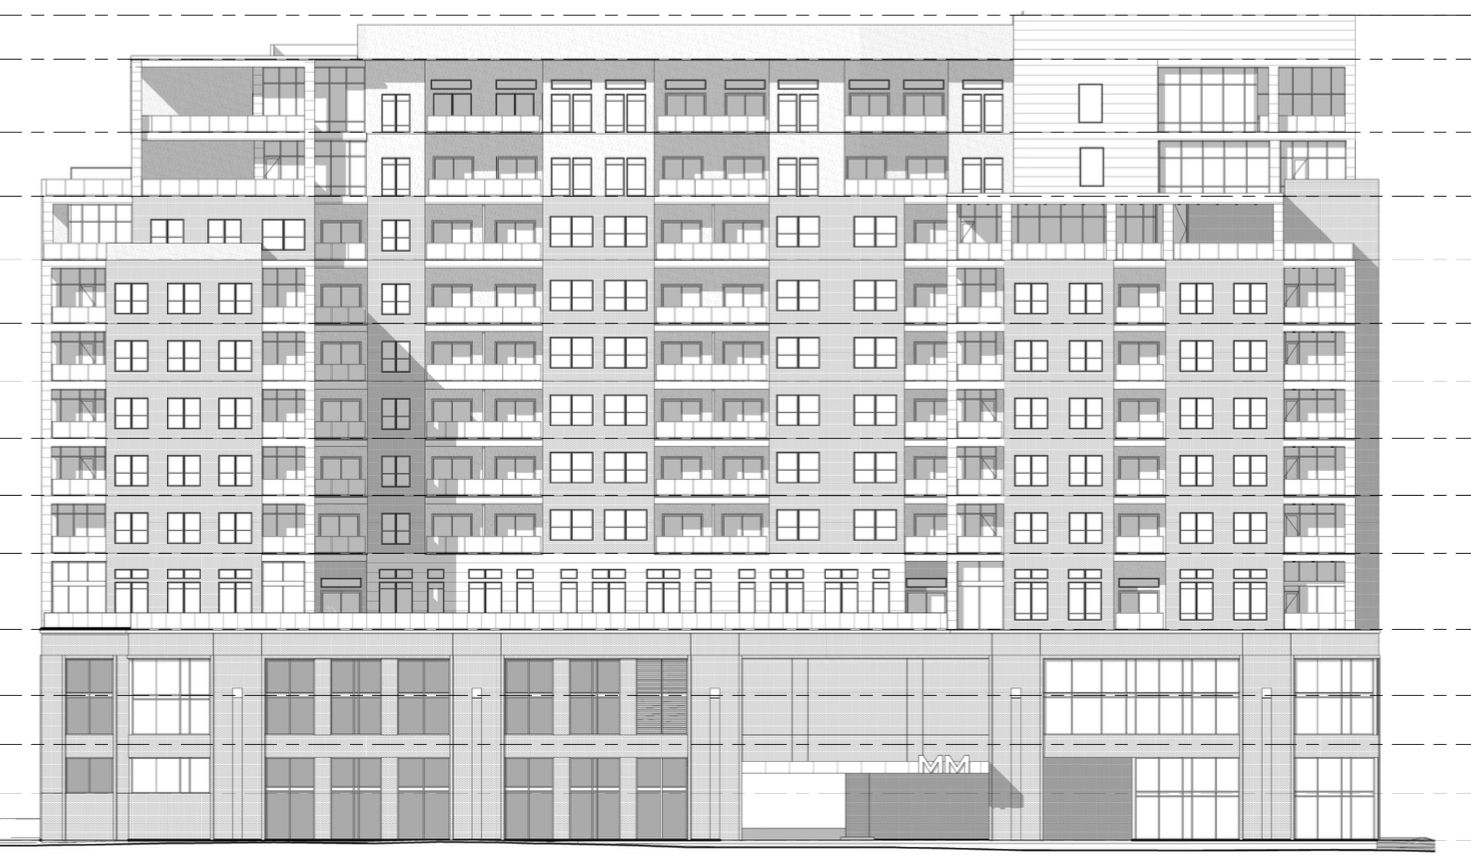 Kairoi Residential's planned Maple Avenue residential building will have 12 floors.